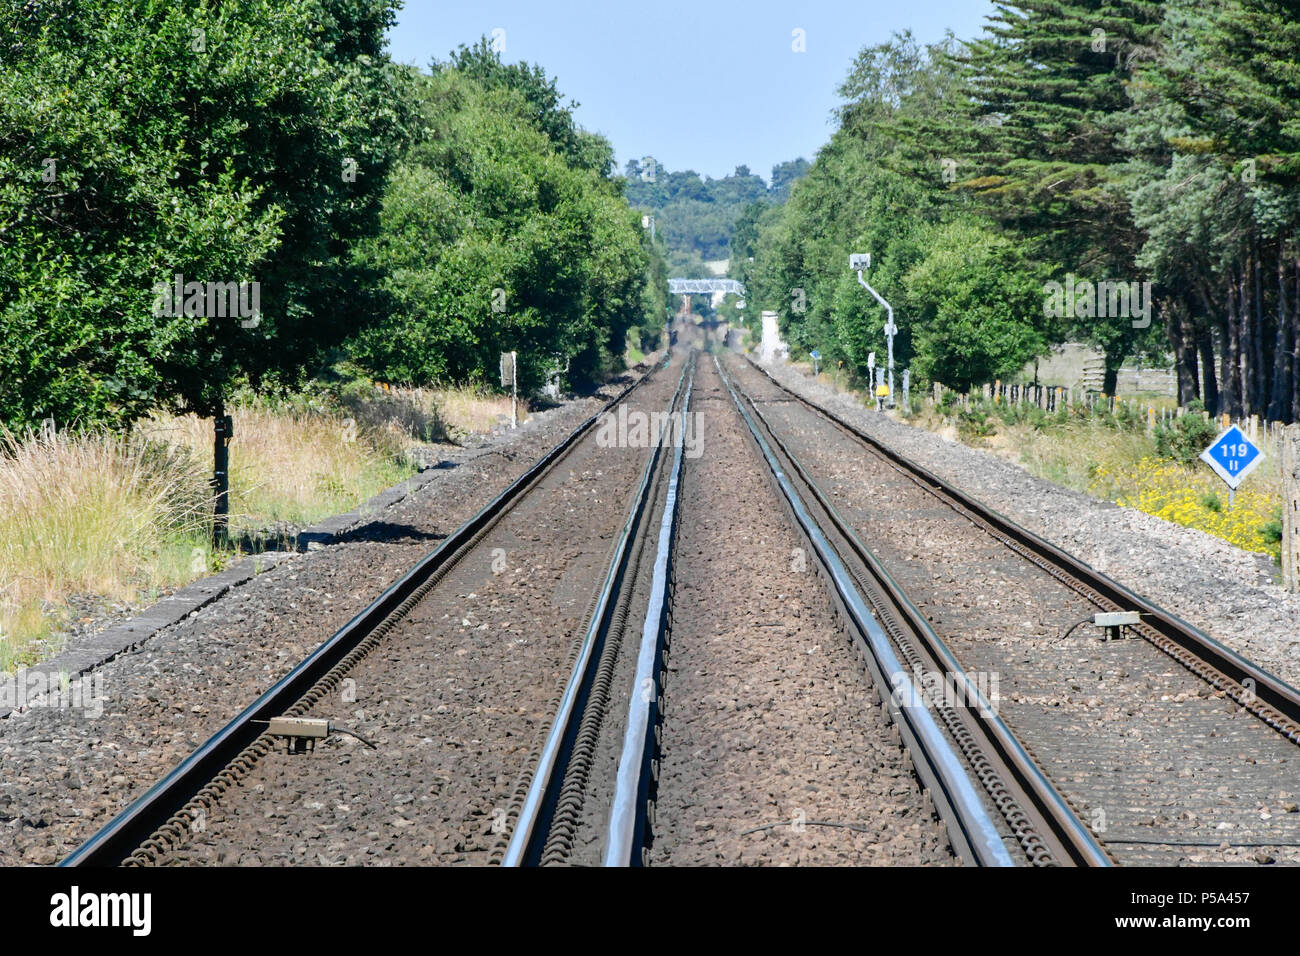 Buckling Rail Stock Photos & Buckling Rail Stock Images - Alamy